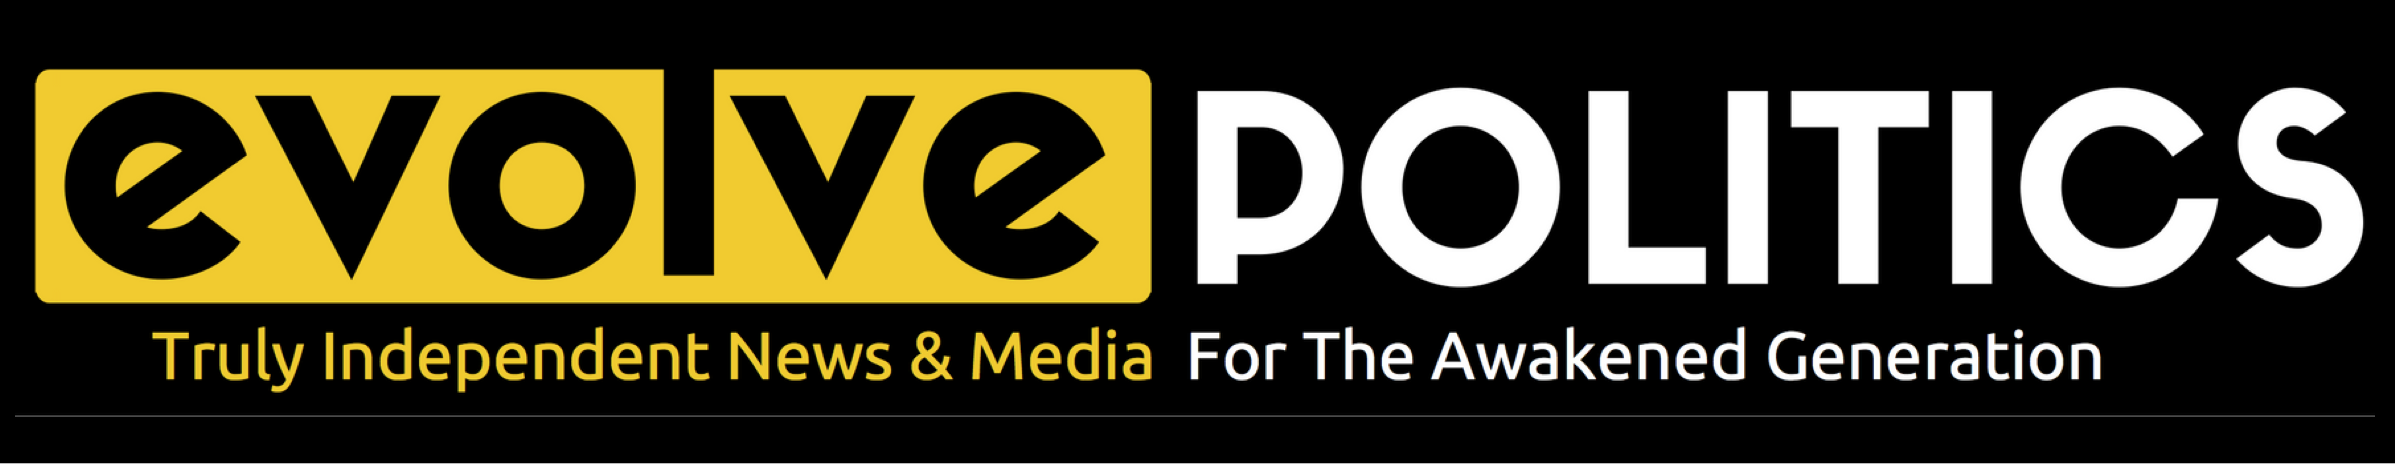 EvolvePolitics | Truly Independent News & Media For The Awakened Generation